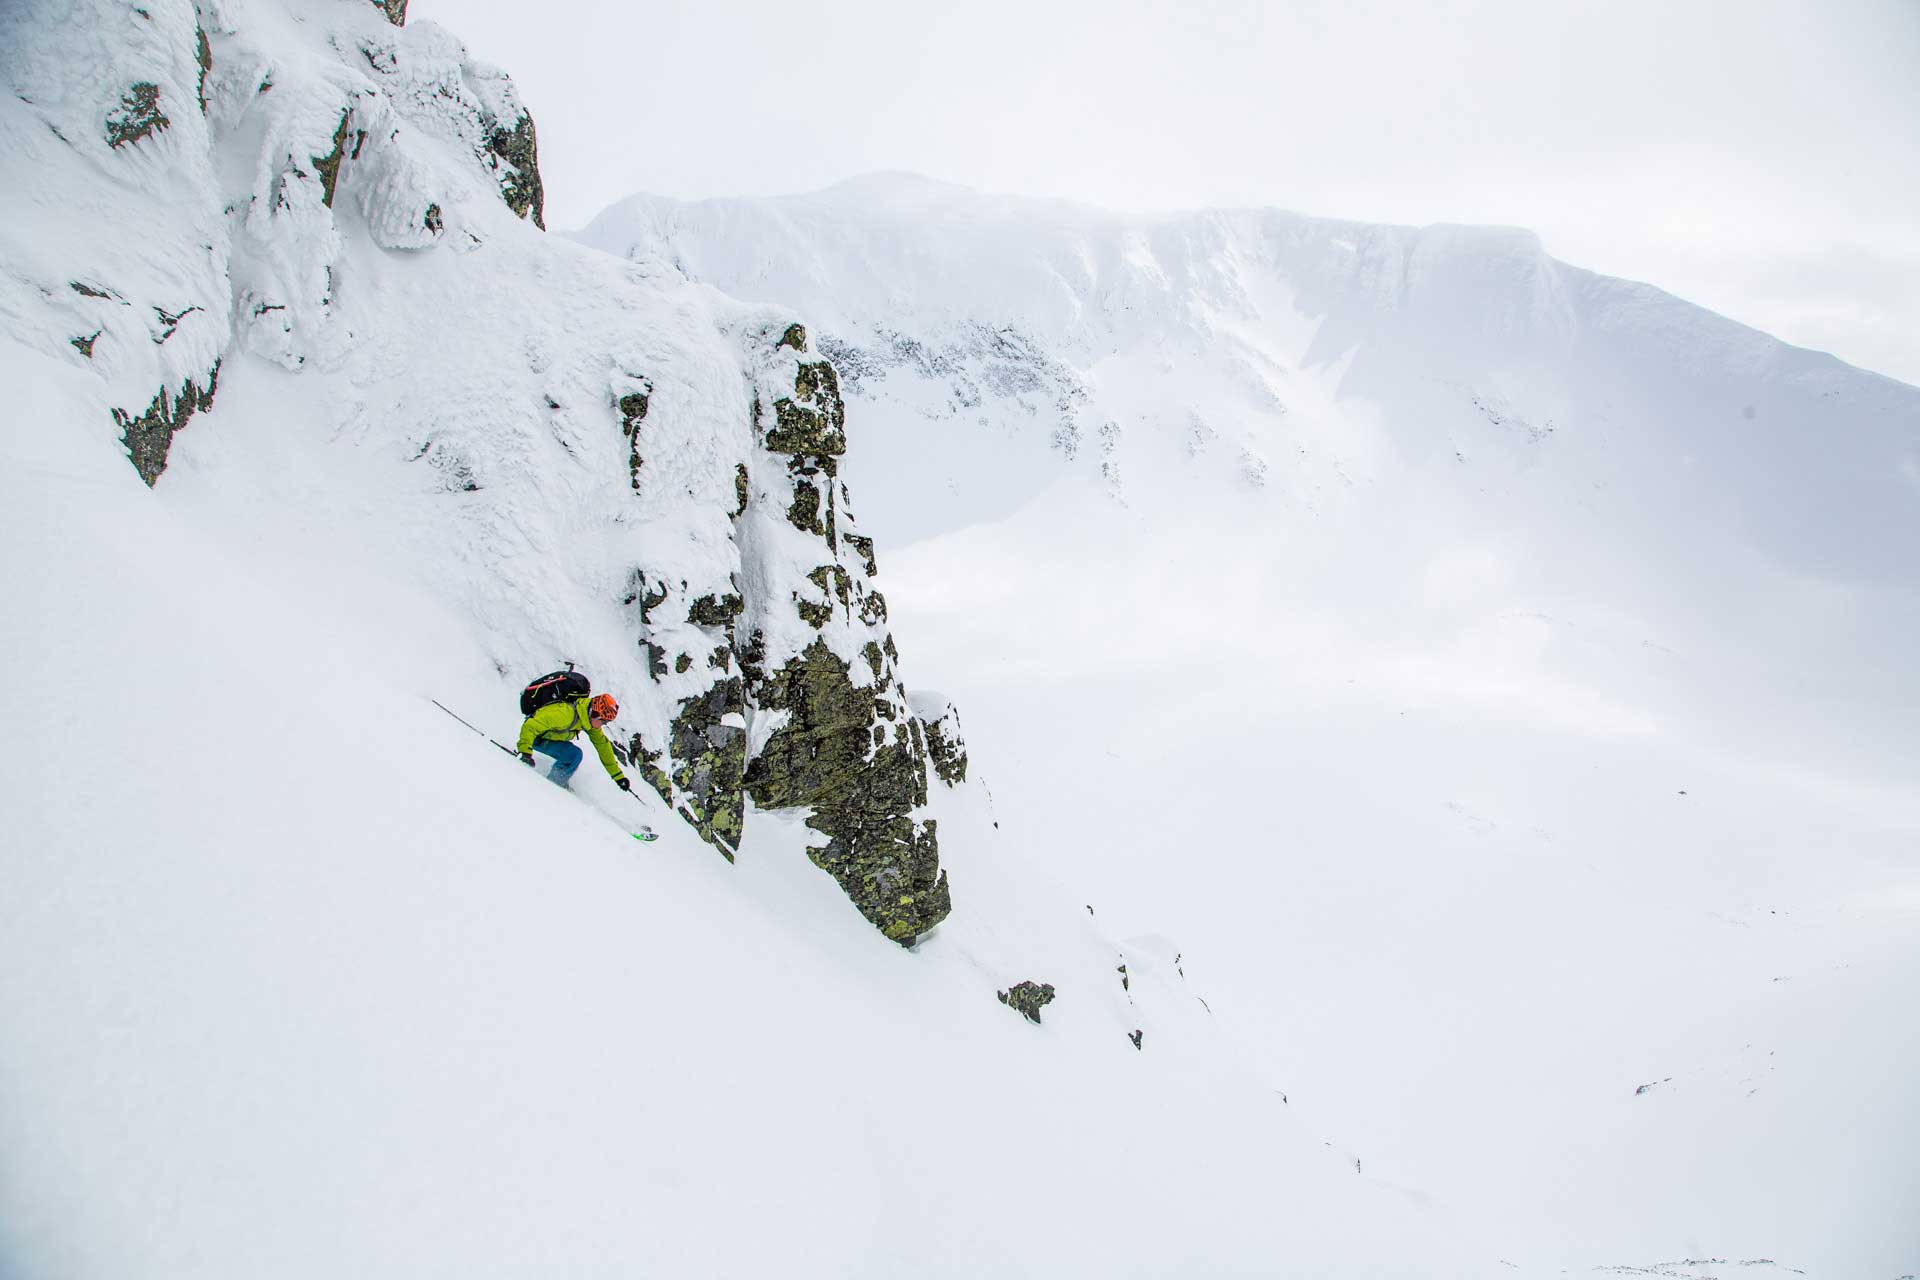 Skiing in Sweden – Sylarna | Photo: Anette Andersson